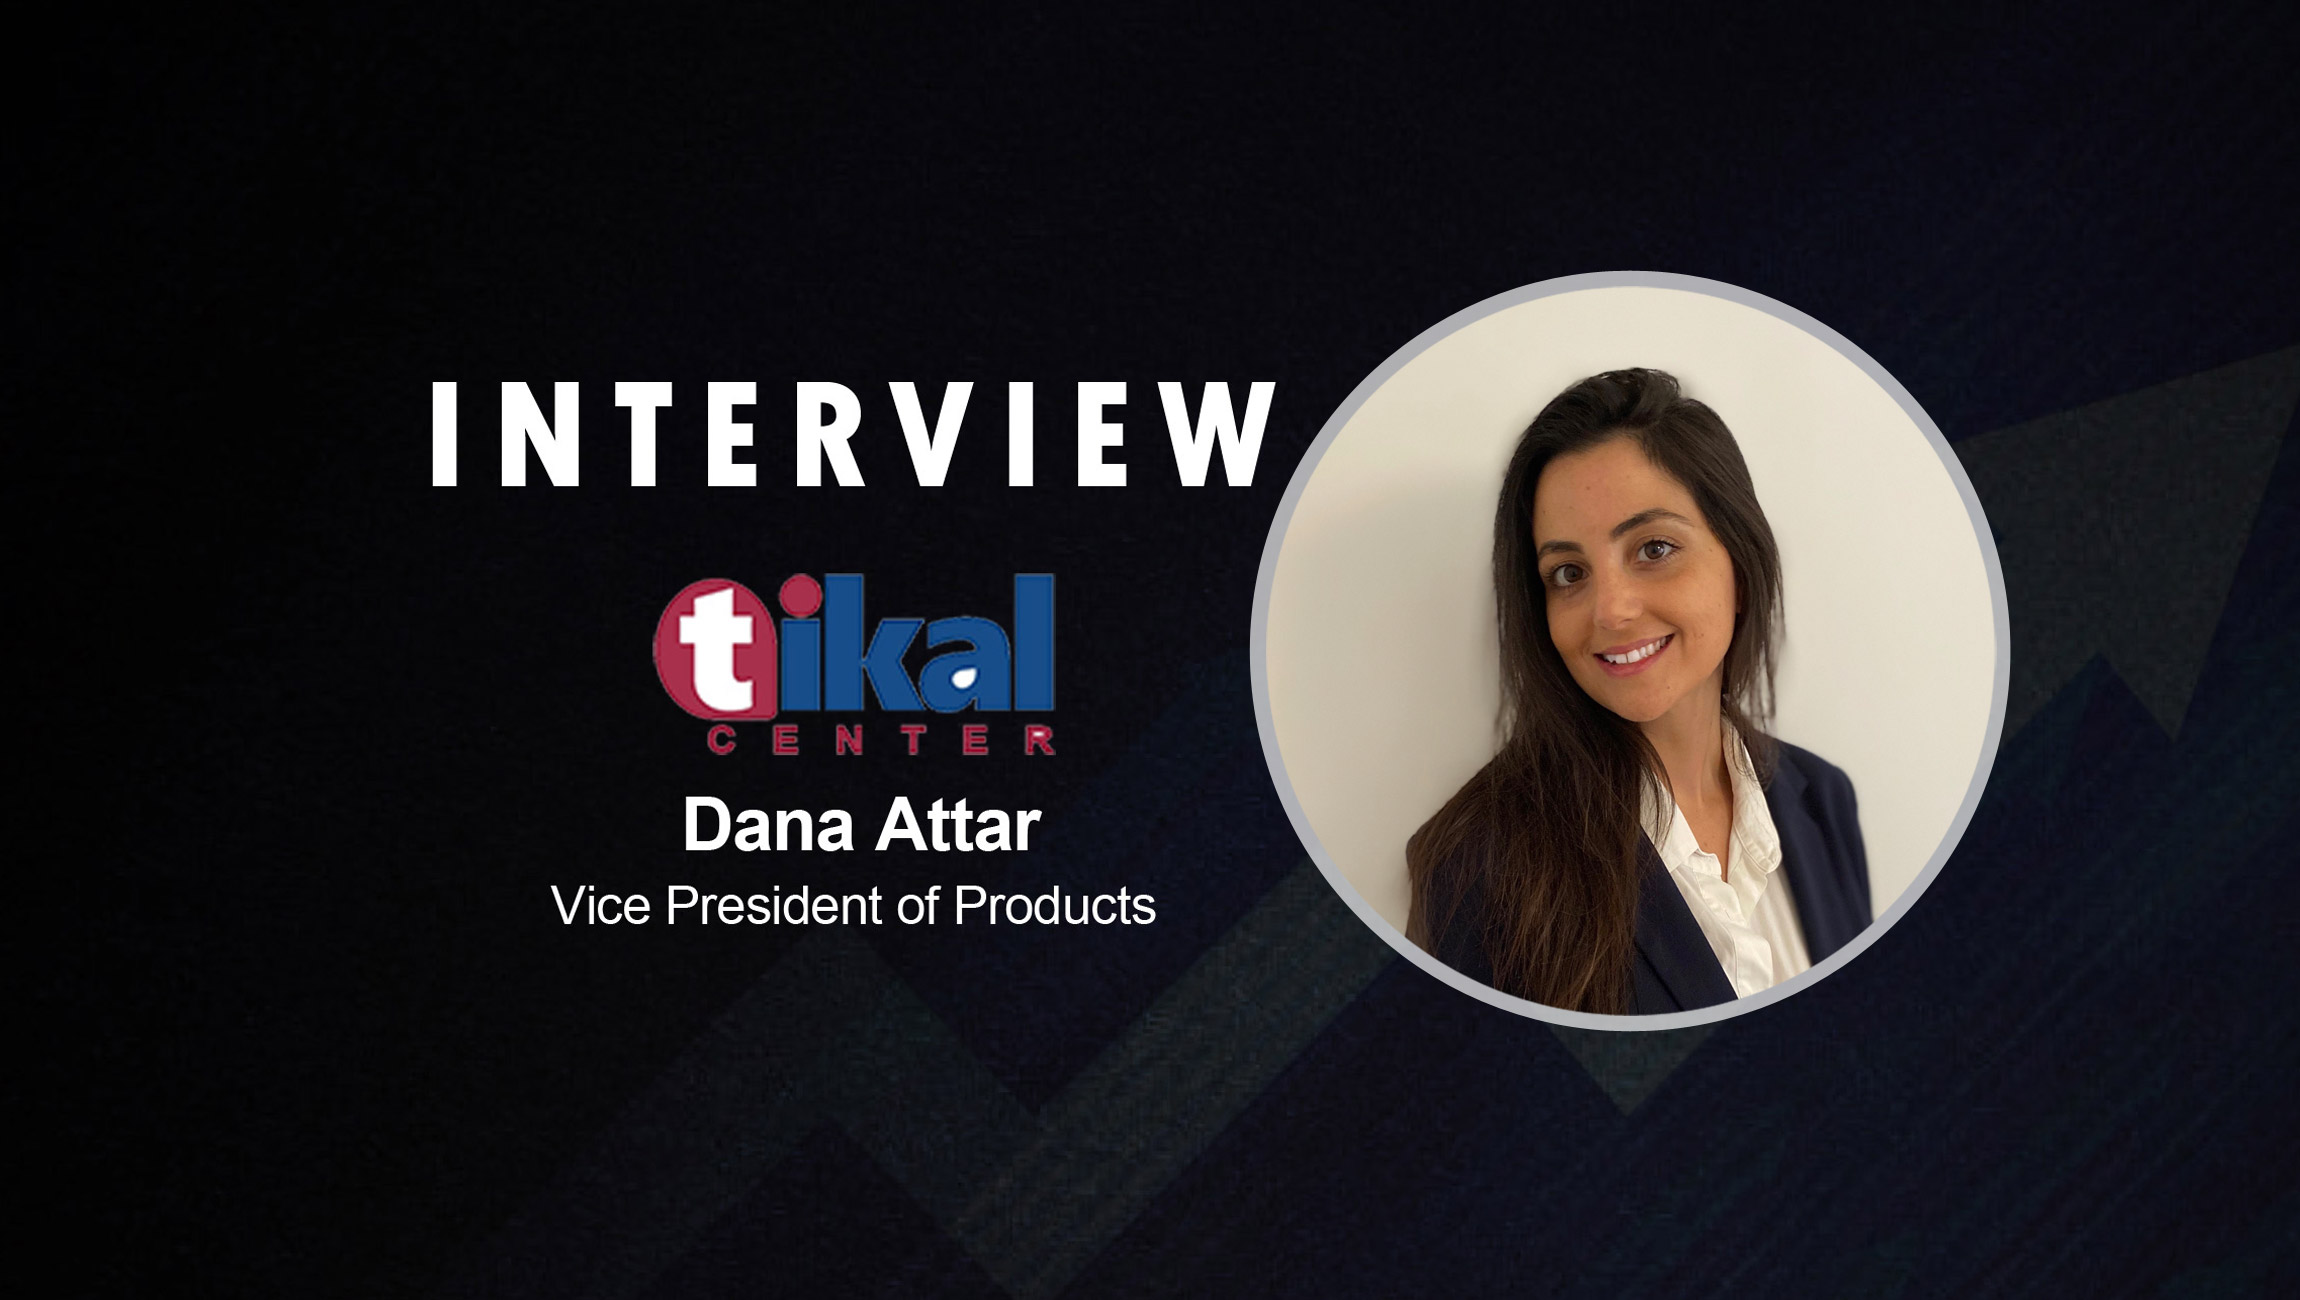 SalesTechStar Interview with Dana Attar, Vice President of Products at Tikal Center